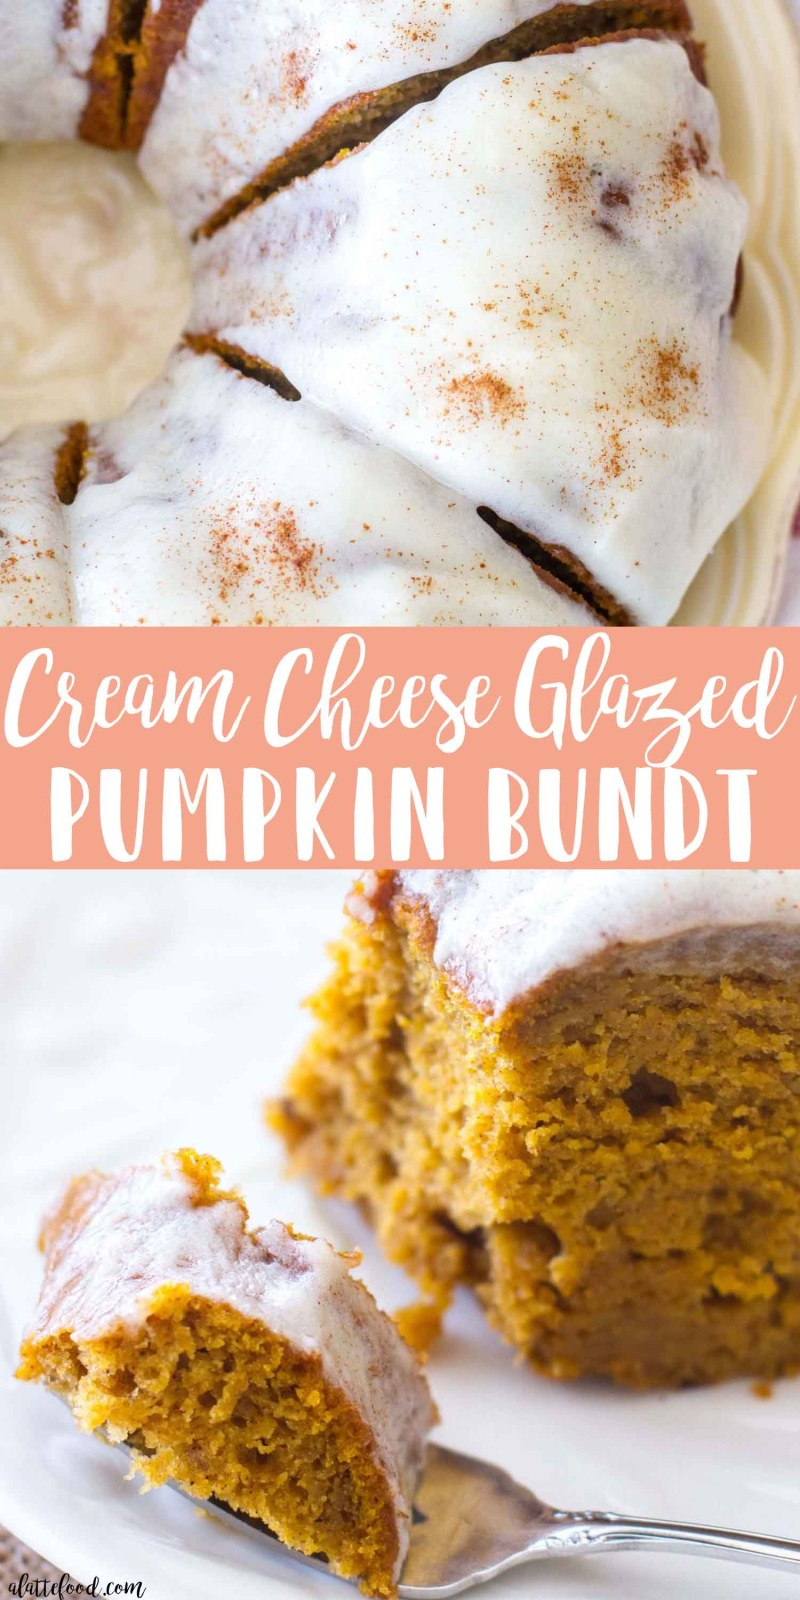 This classic fall dessert, Cream Cheese Glazed Pumpkin Bundt Cake, is full of pumpkin flavor, cinnamon spice, and rich cream cheese! This rich pumpkin cake is the perfect fall dessert, and the pumpkin cream cheese frosting is to die for! It is absolutely Heavenly. #pumpkin #cake #fall #dessert #recipe